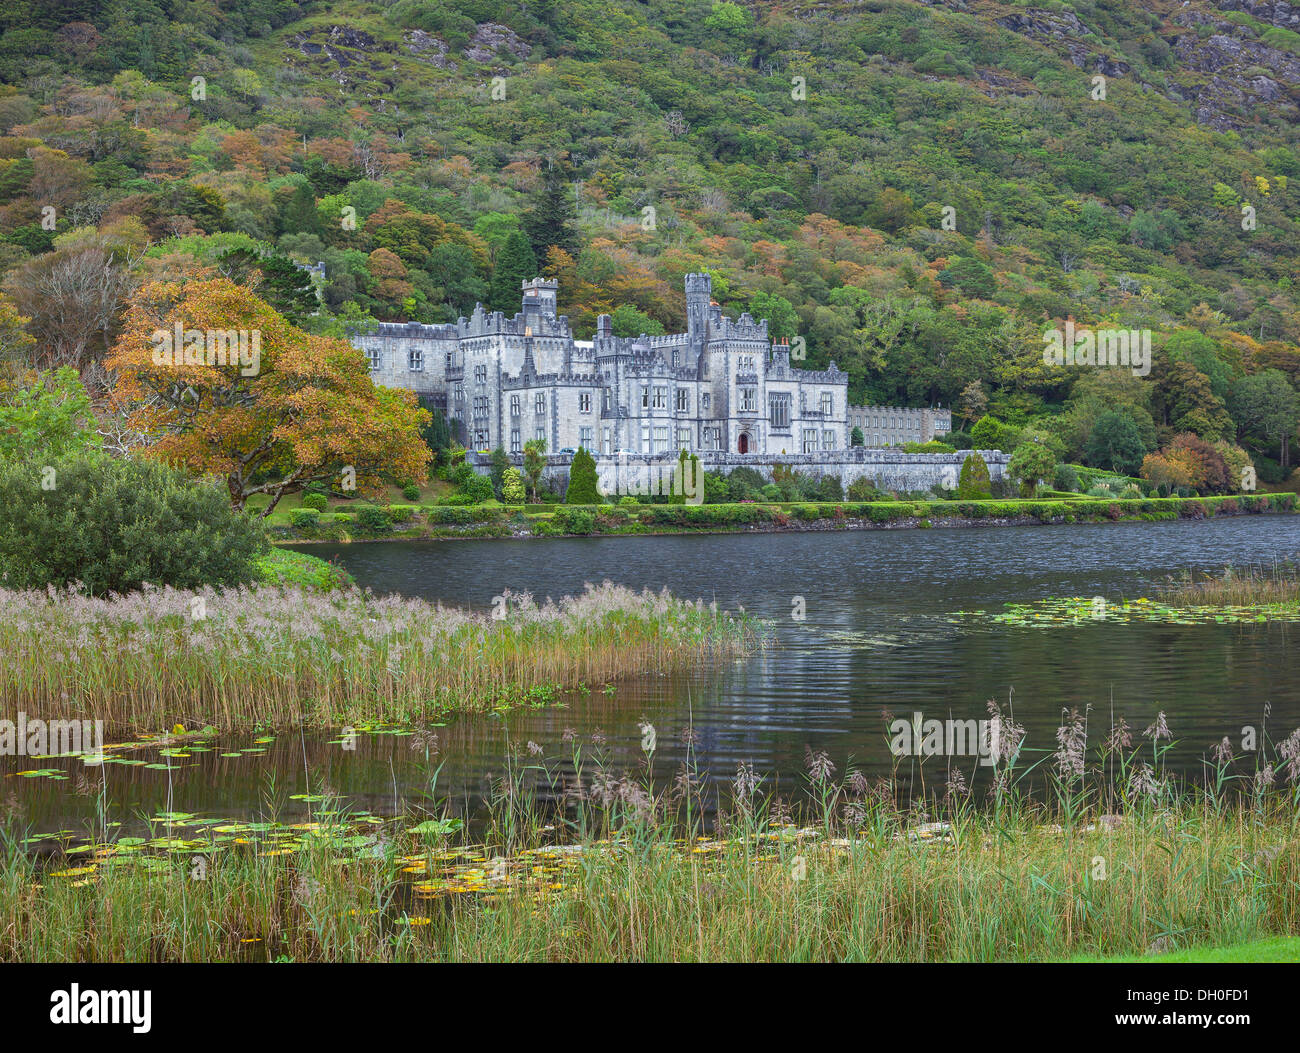 County Galway, Ireland: Kylemore Abbey sheltered by the slopes of the Twelve Bens on the shoreline of Kylemore Lough - Stock Image